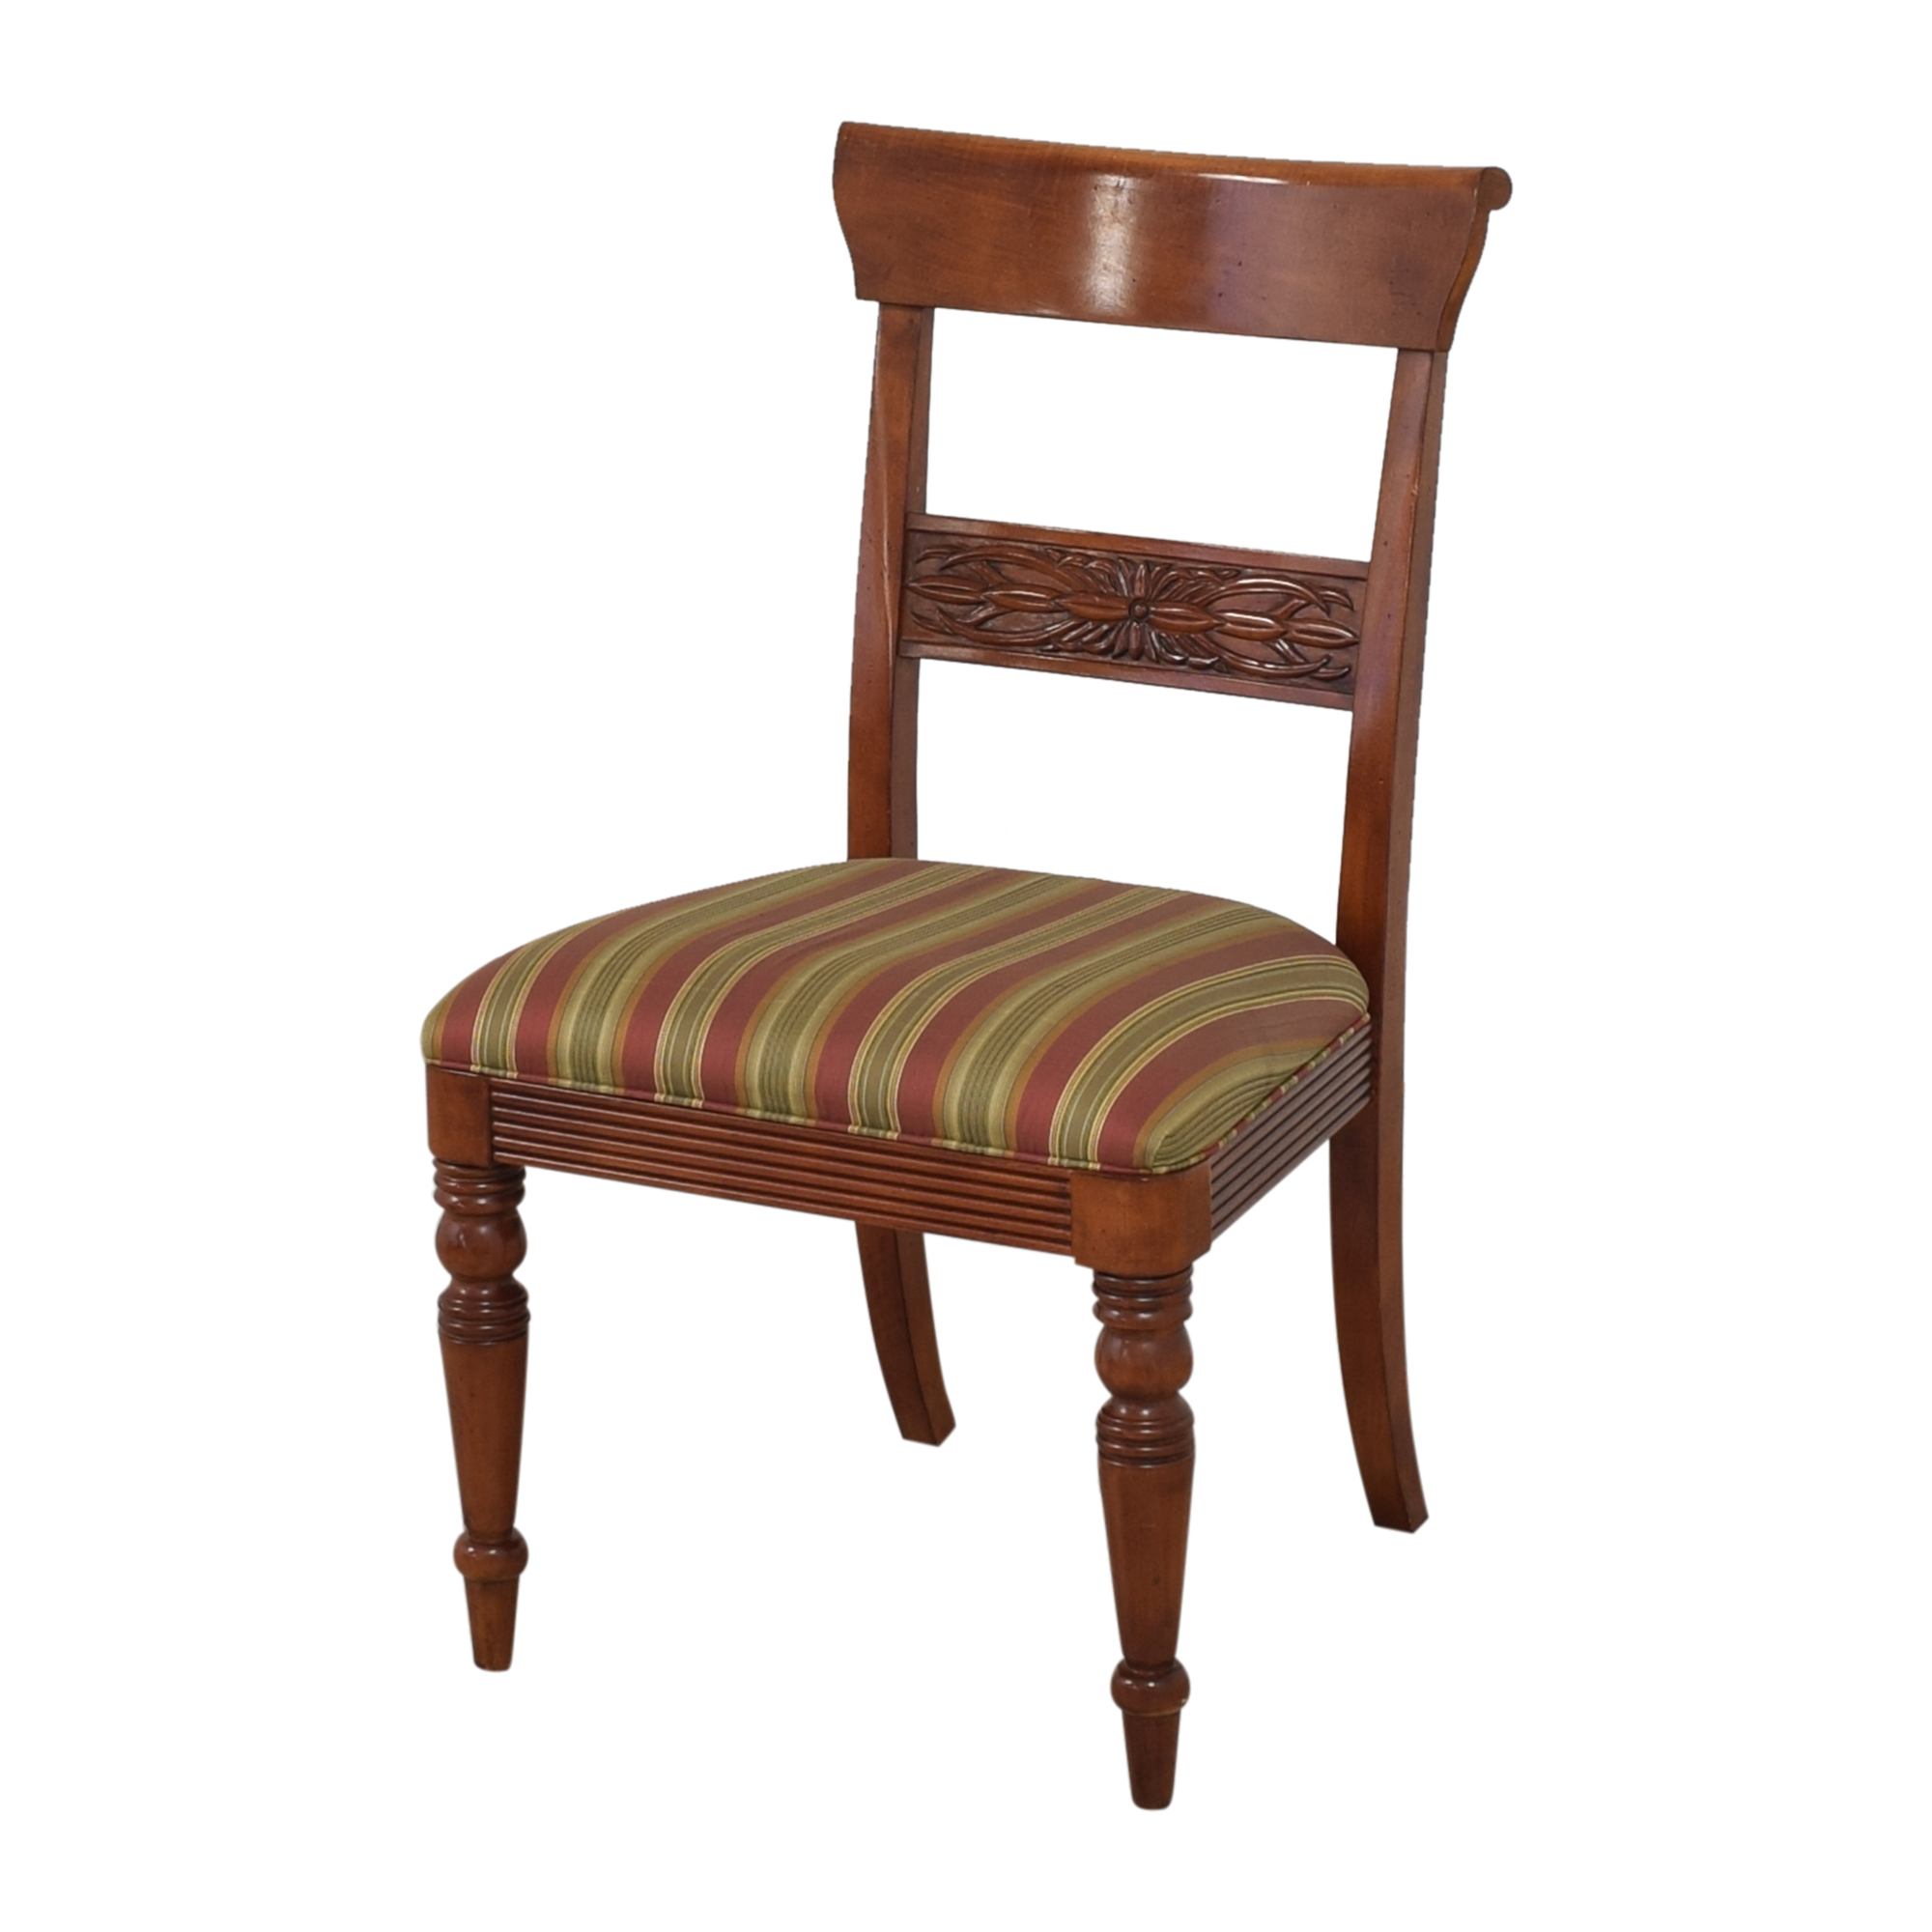 buy Ethan Allen British Classics Dining Chairs Ethan Allen Dining Chairs